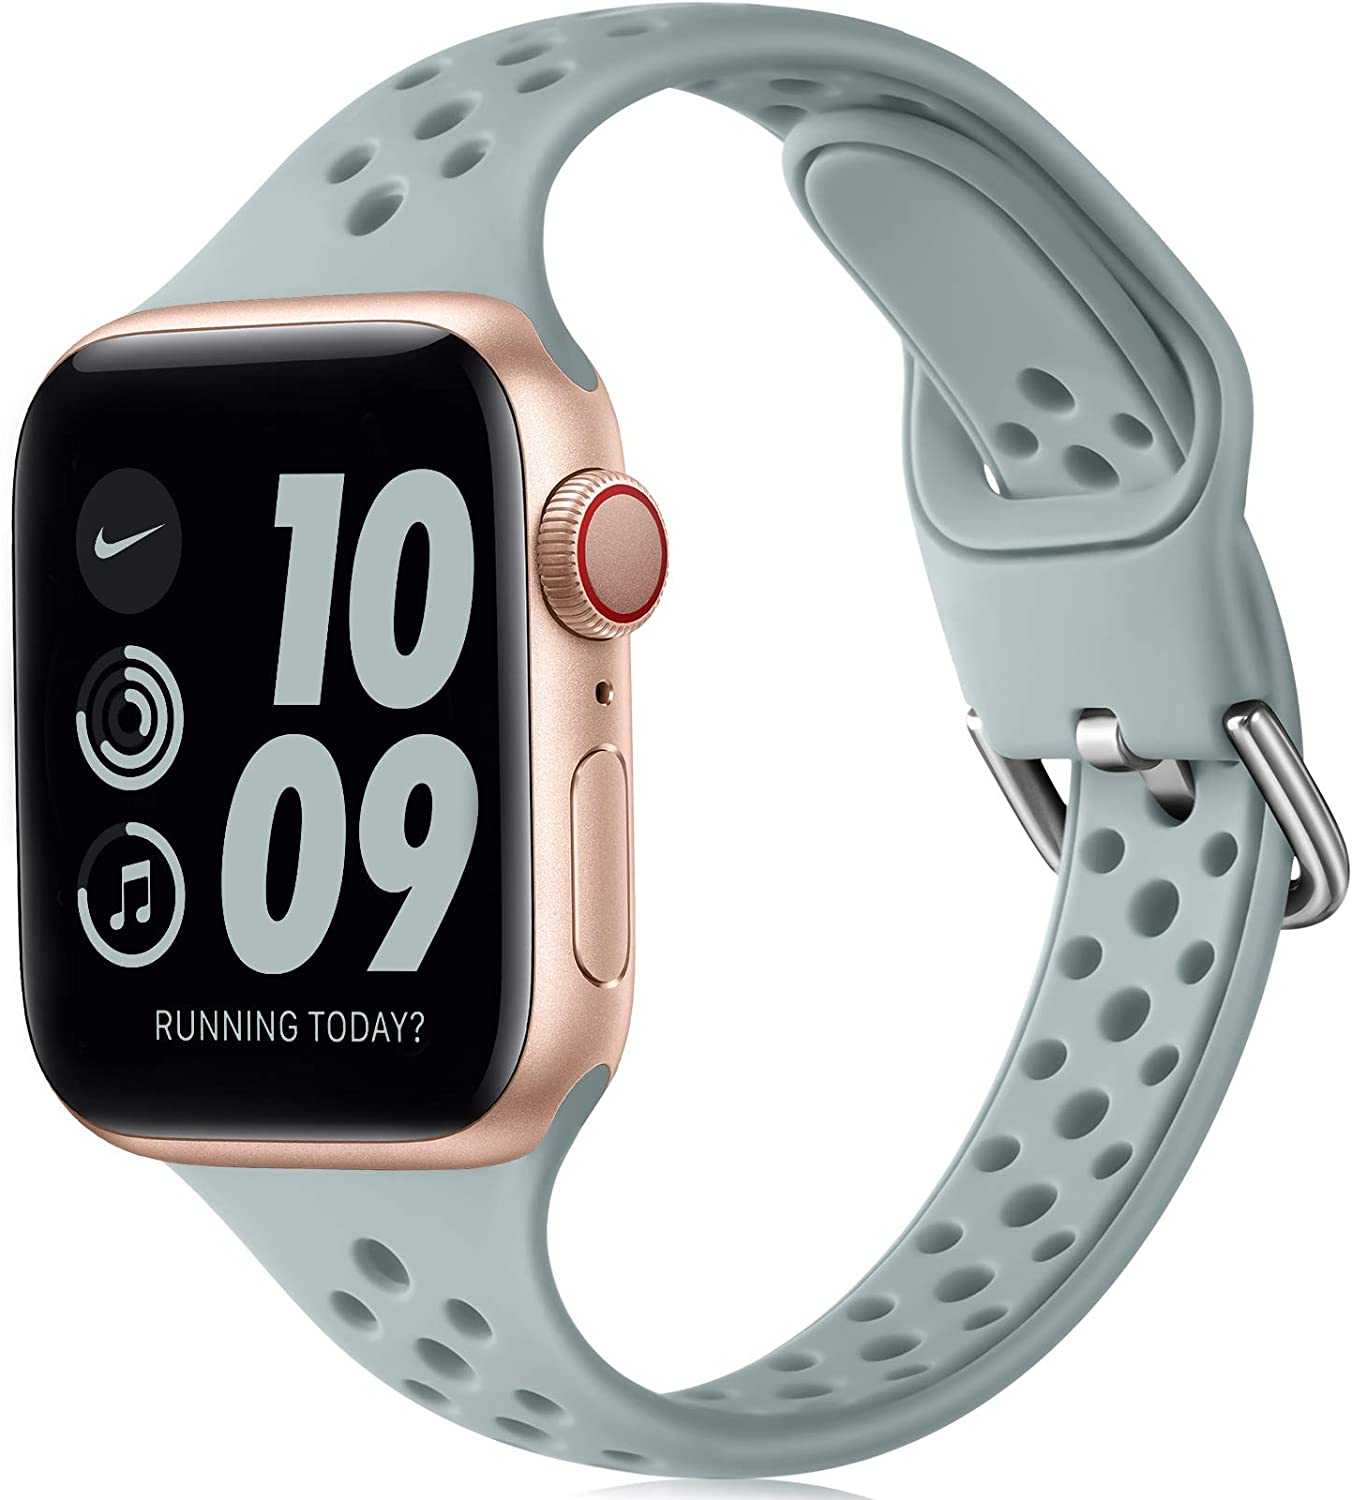 Henva Slim Breathable Band Compatible with Apple Watch SE 38mm 40mm for Women Girls, Soft Silicone Narrow Sport Band Compatible with iWatch Series 6 5 4 3 2 1, Turquoise